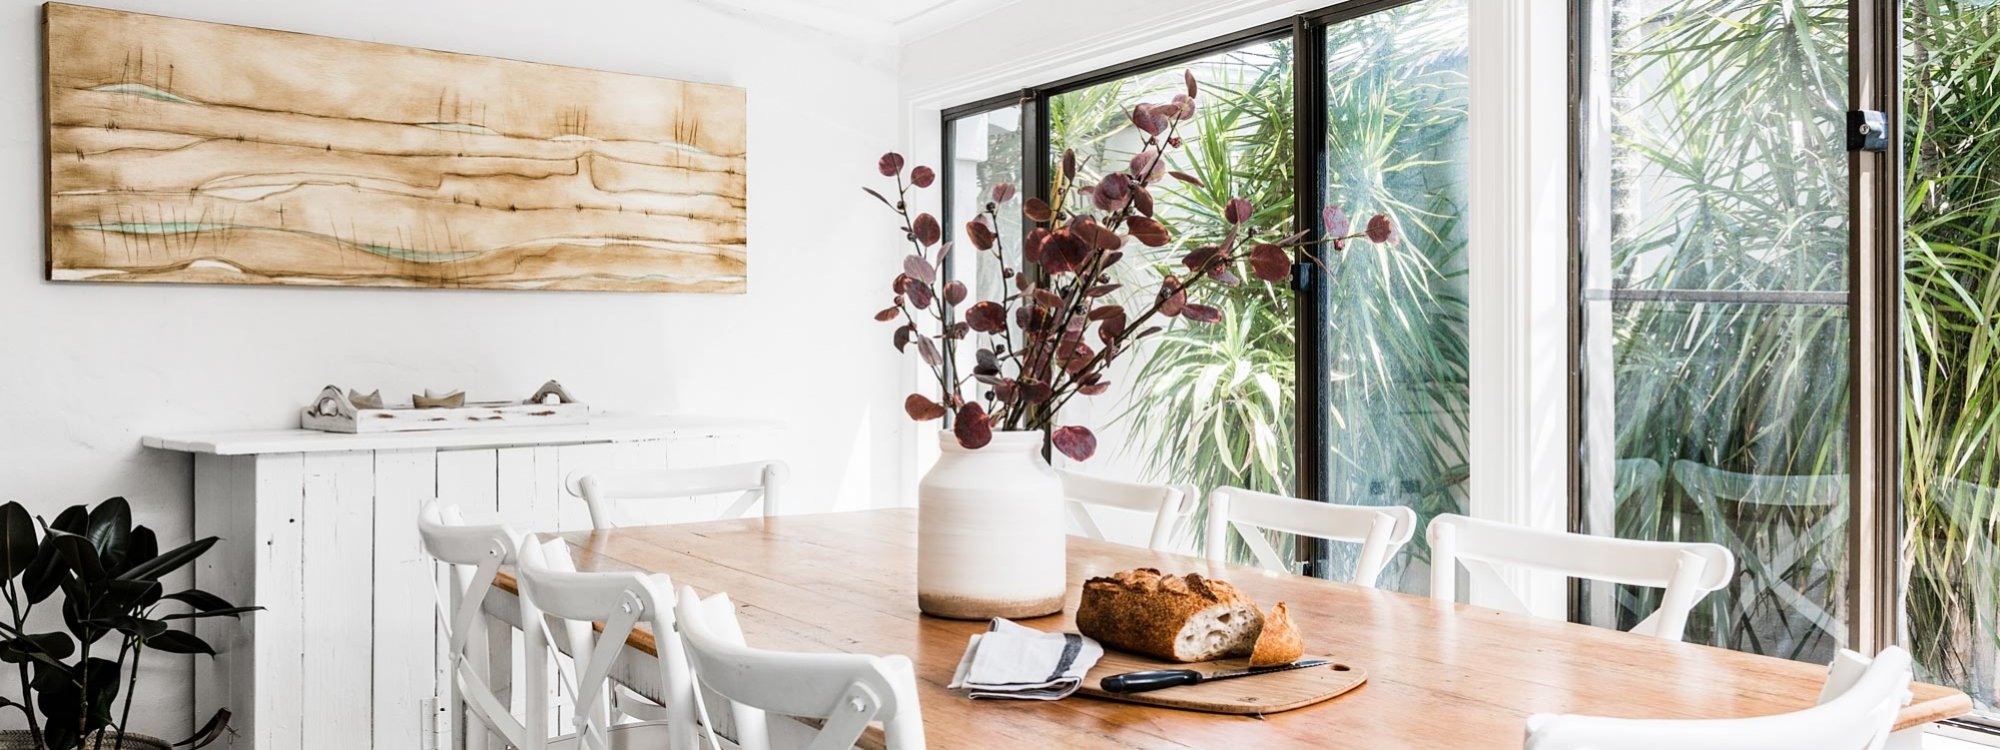 Beachwood - Byron Bay - Dining table b